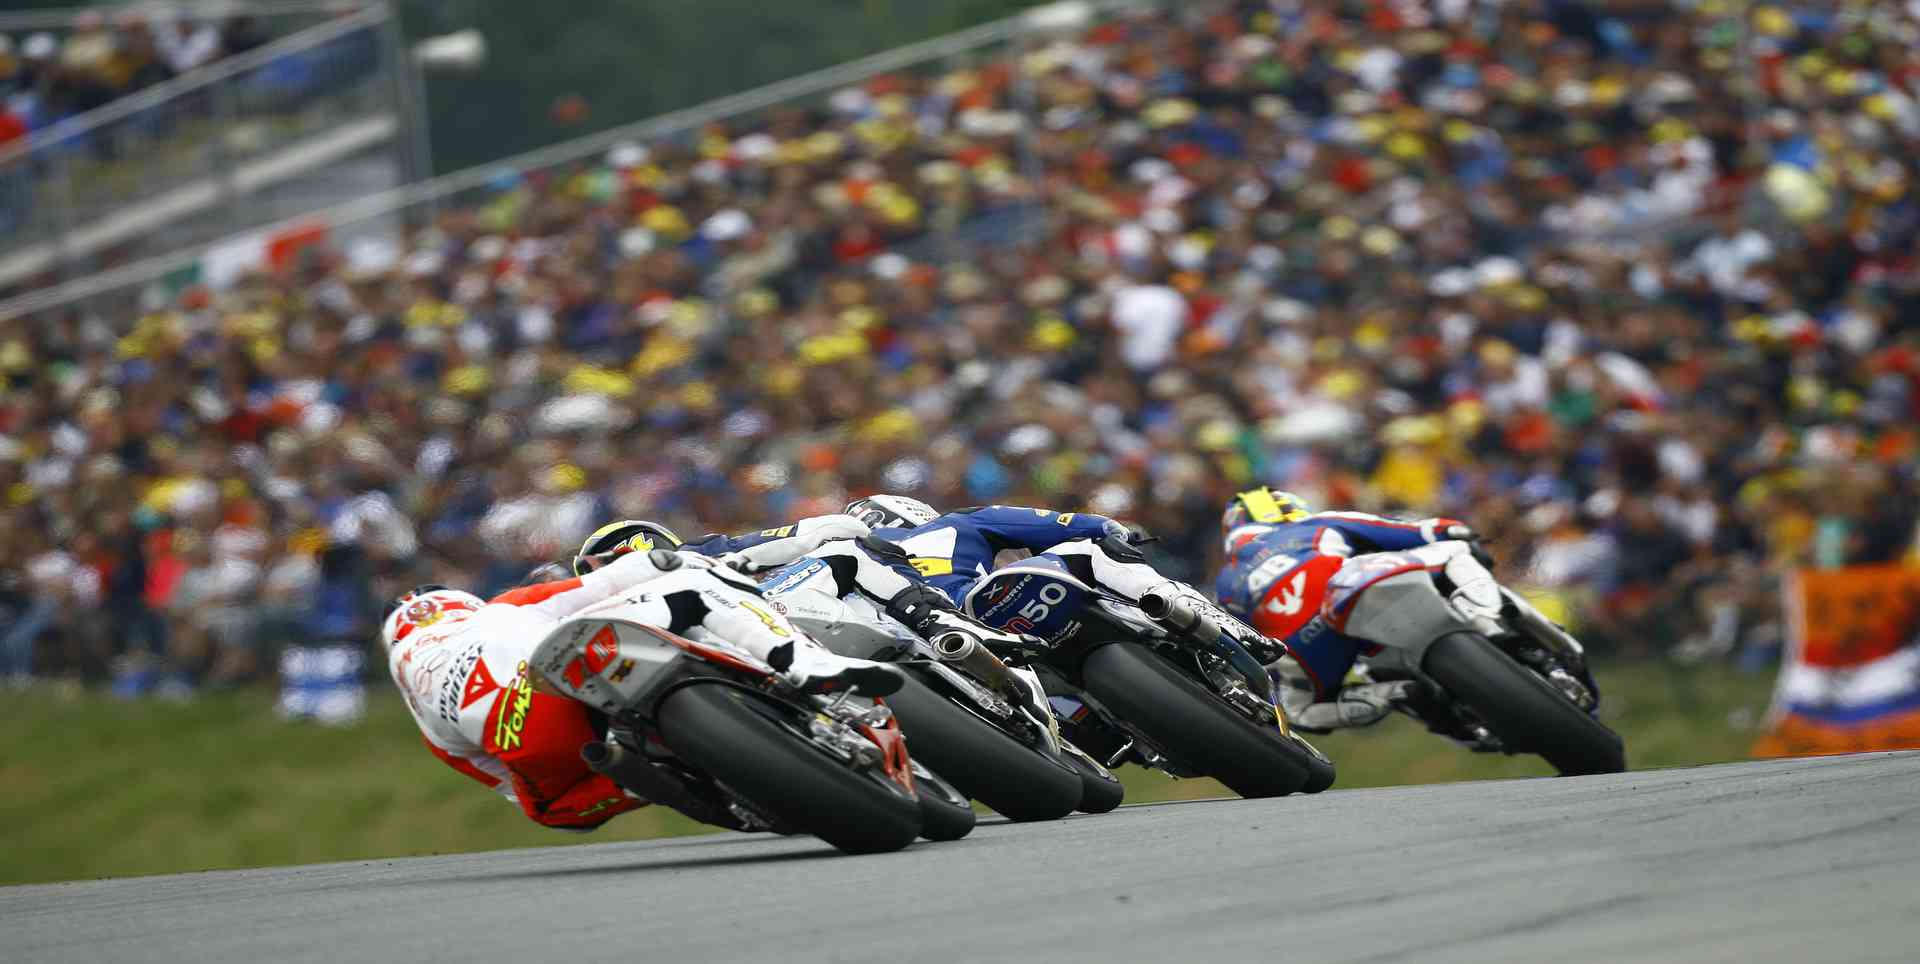 live-geico-us-round-superbike-hd